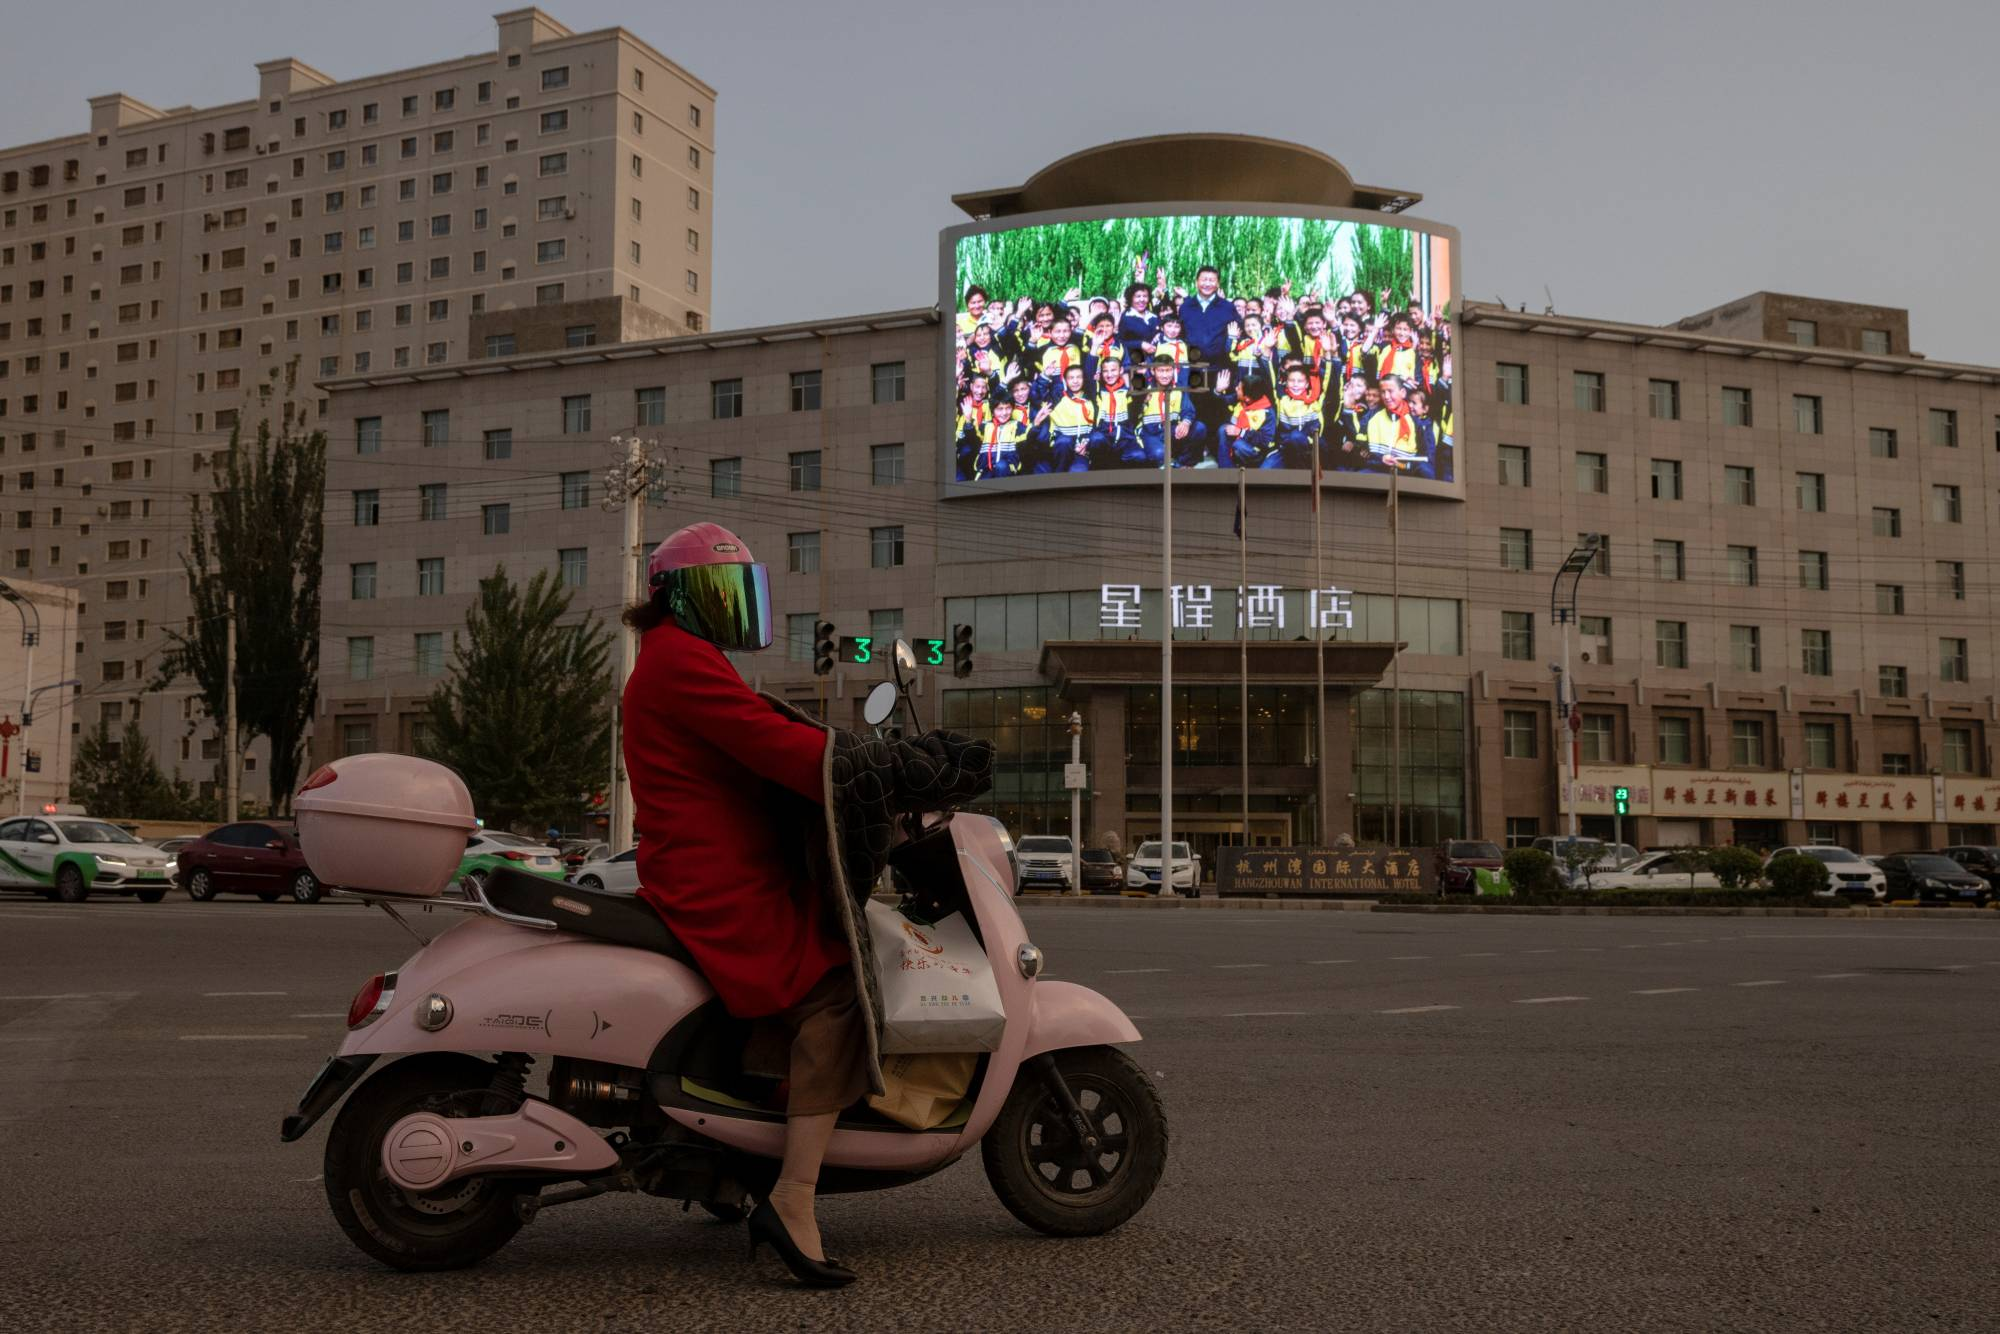 A screen shows a picture of Chinese leader Xi Jinping at a traffic junction in Hotan, in China's far-west Xinjiang region, on April 30.   REUTERS